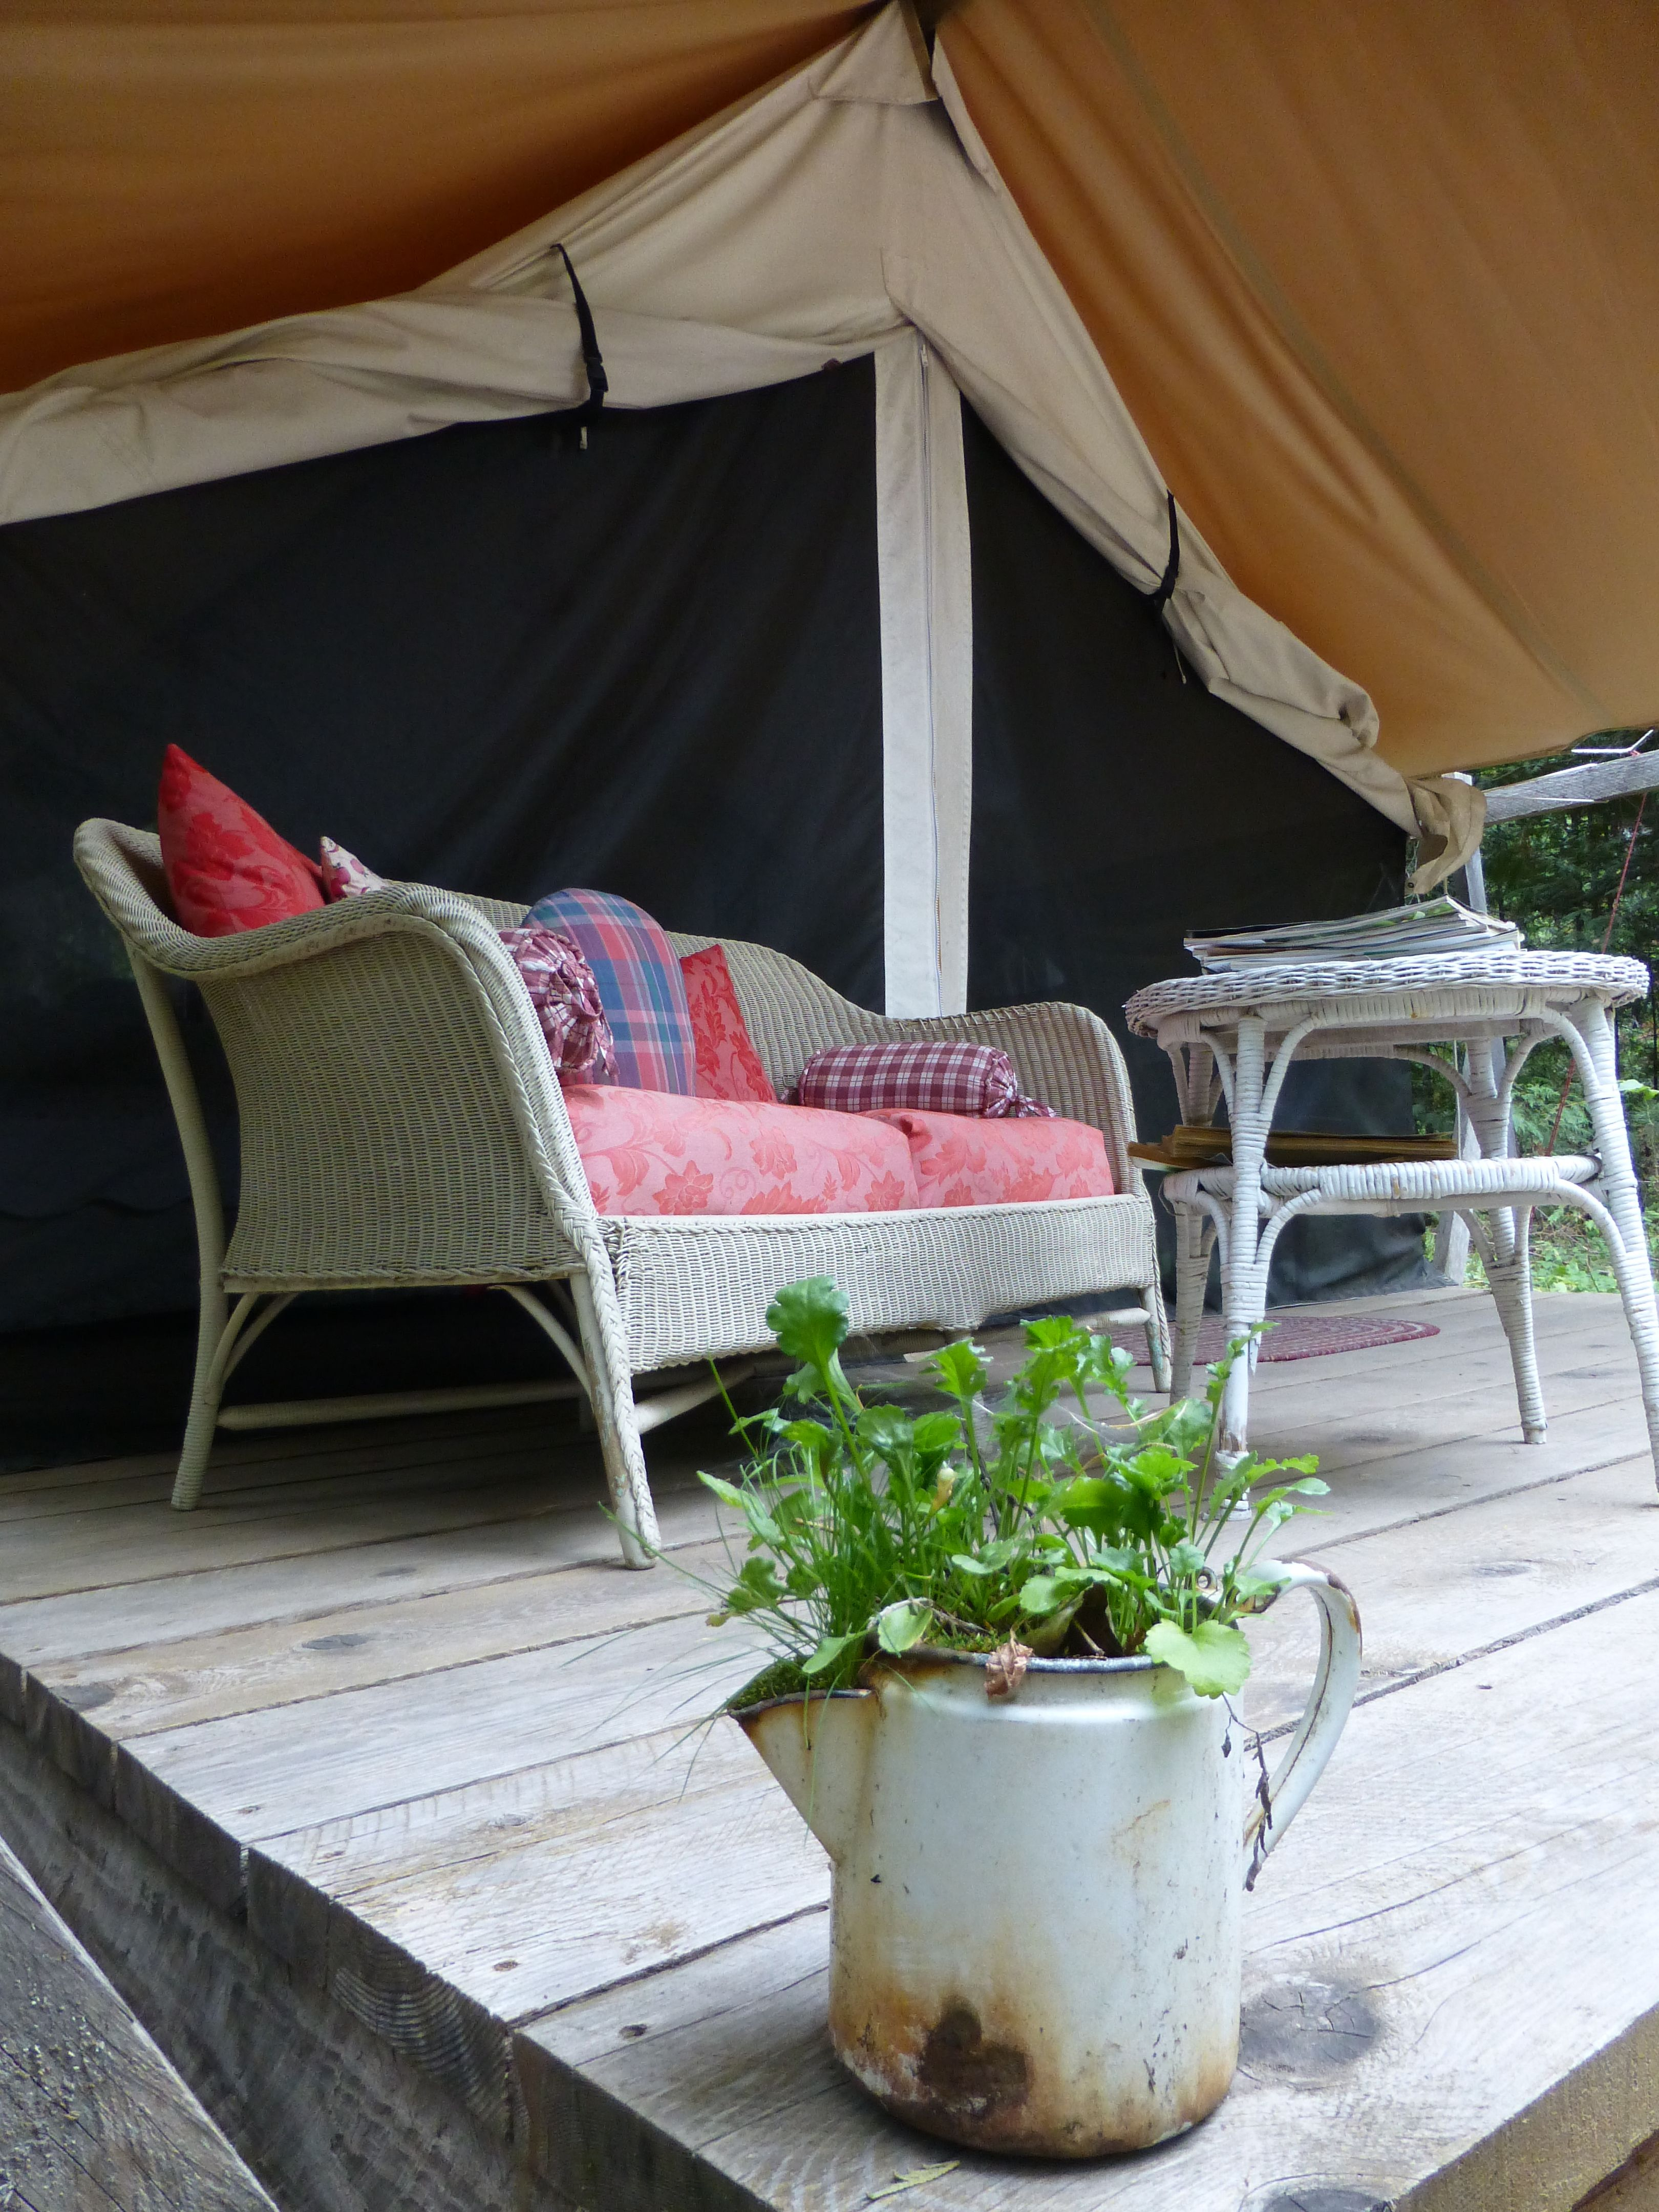 Gl&ing  Glamour C&ing  in North Idaho at Huckleberry Tent and Breakfast. & Glamping